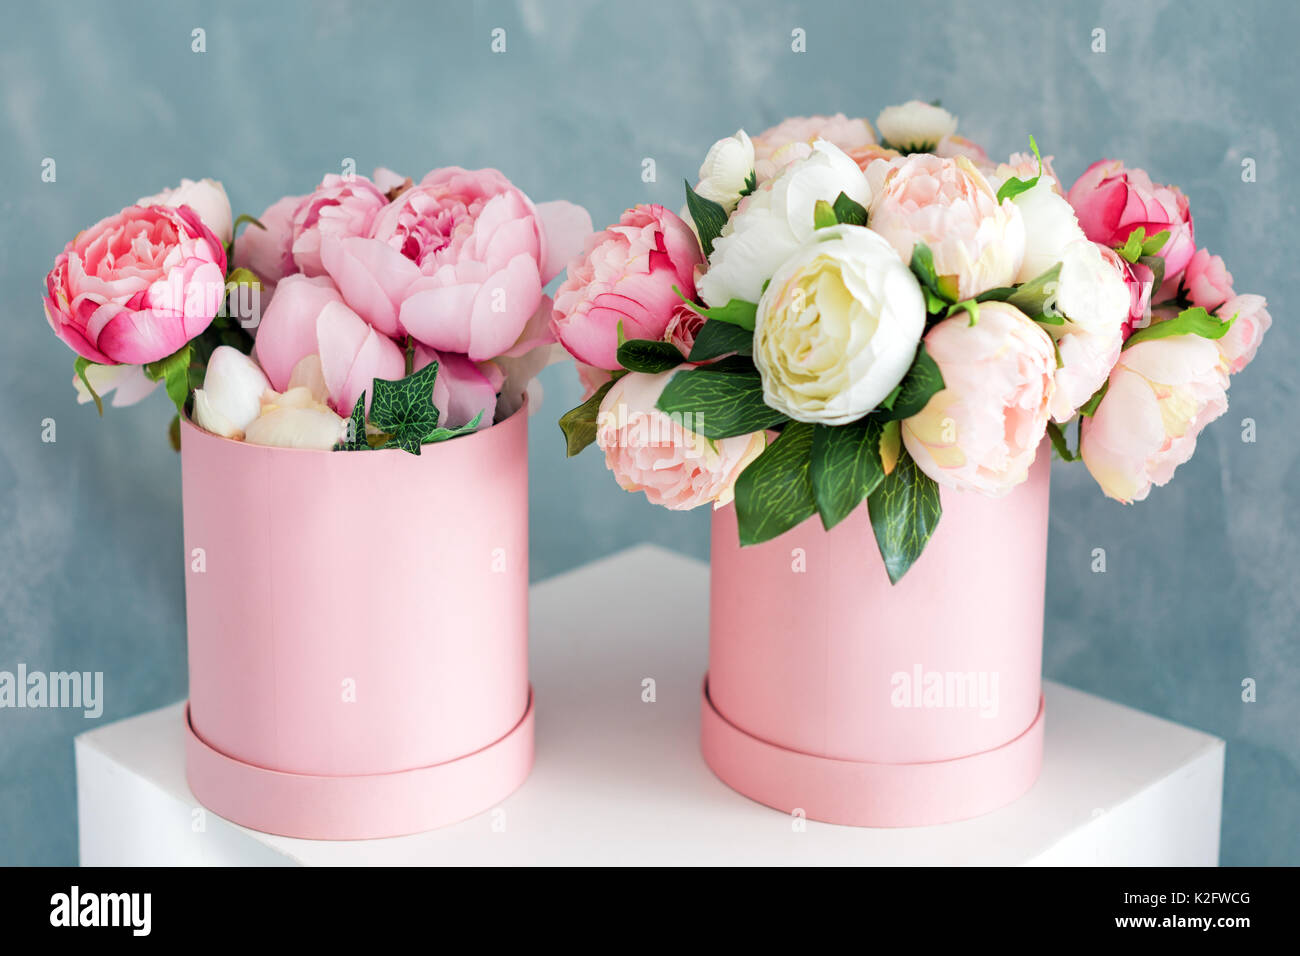 Flowers in round luxury present boxes. Bouquet of pink and white peonies in paper box. Mock-up of hat box of flowers with free copyspace for text. Interior decoration in in pastel colors. - Stock Image